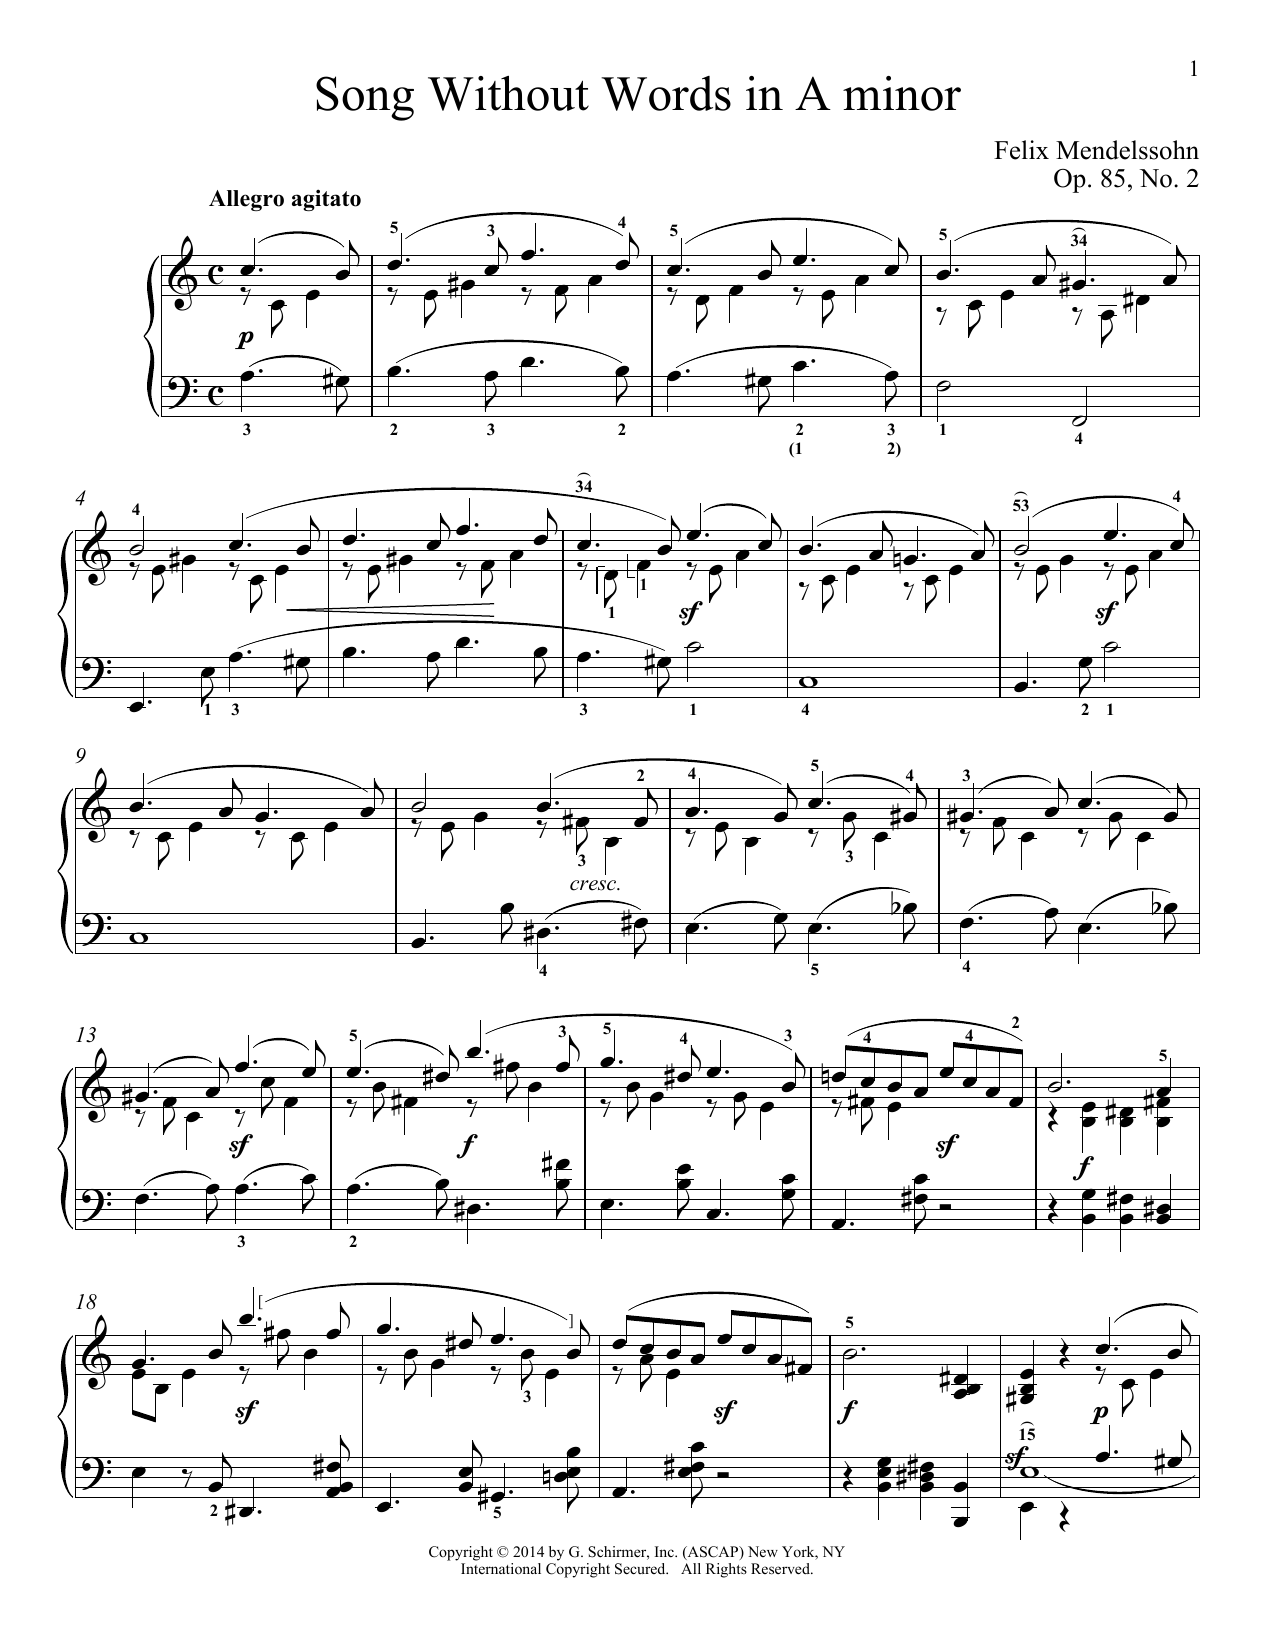 Download Felix Mendelssohn 'Song Without Words In A Minor, Op. 85, No. 2' Digital Sheet Music Notes & Chords and start playing in minutes